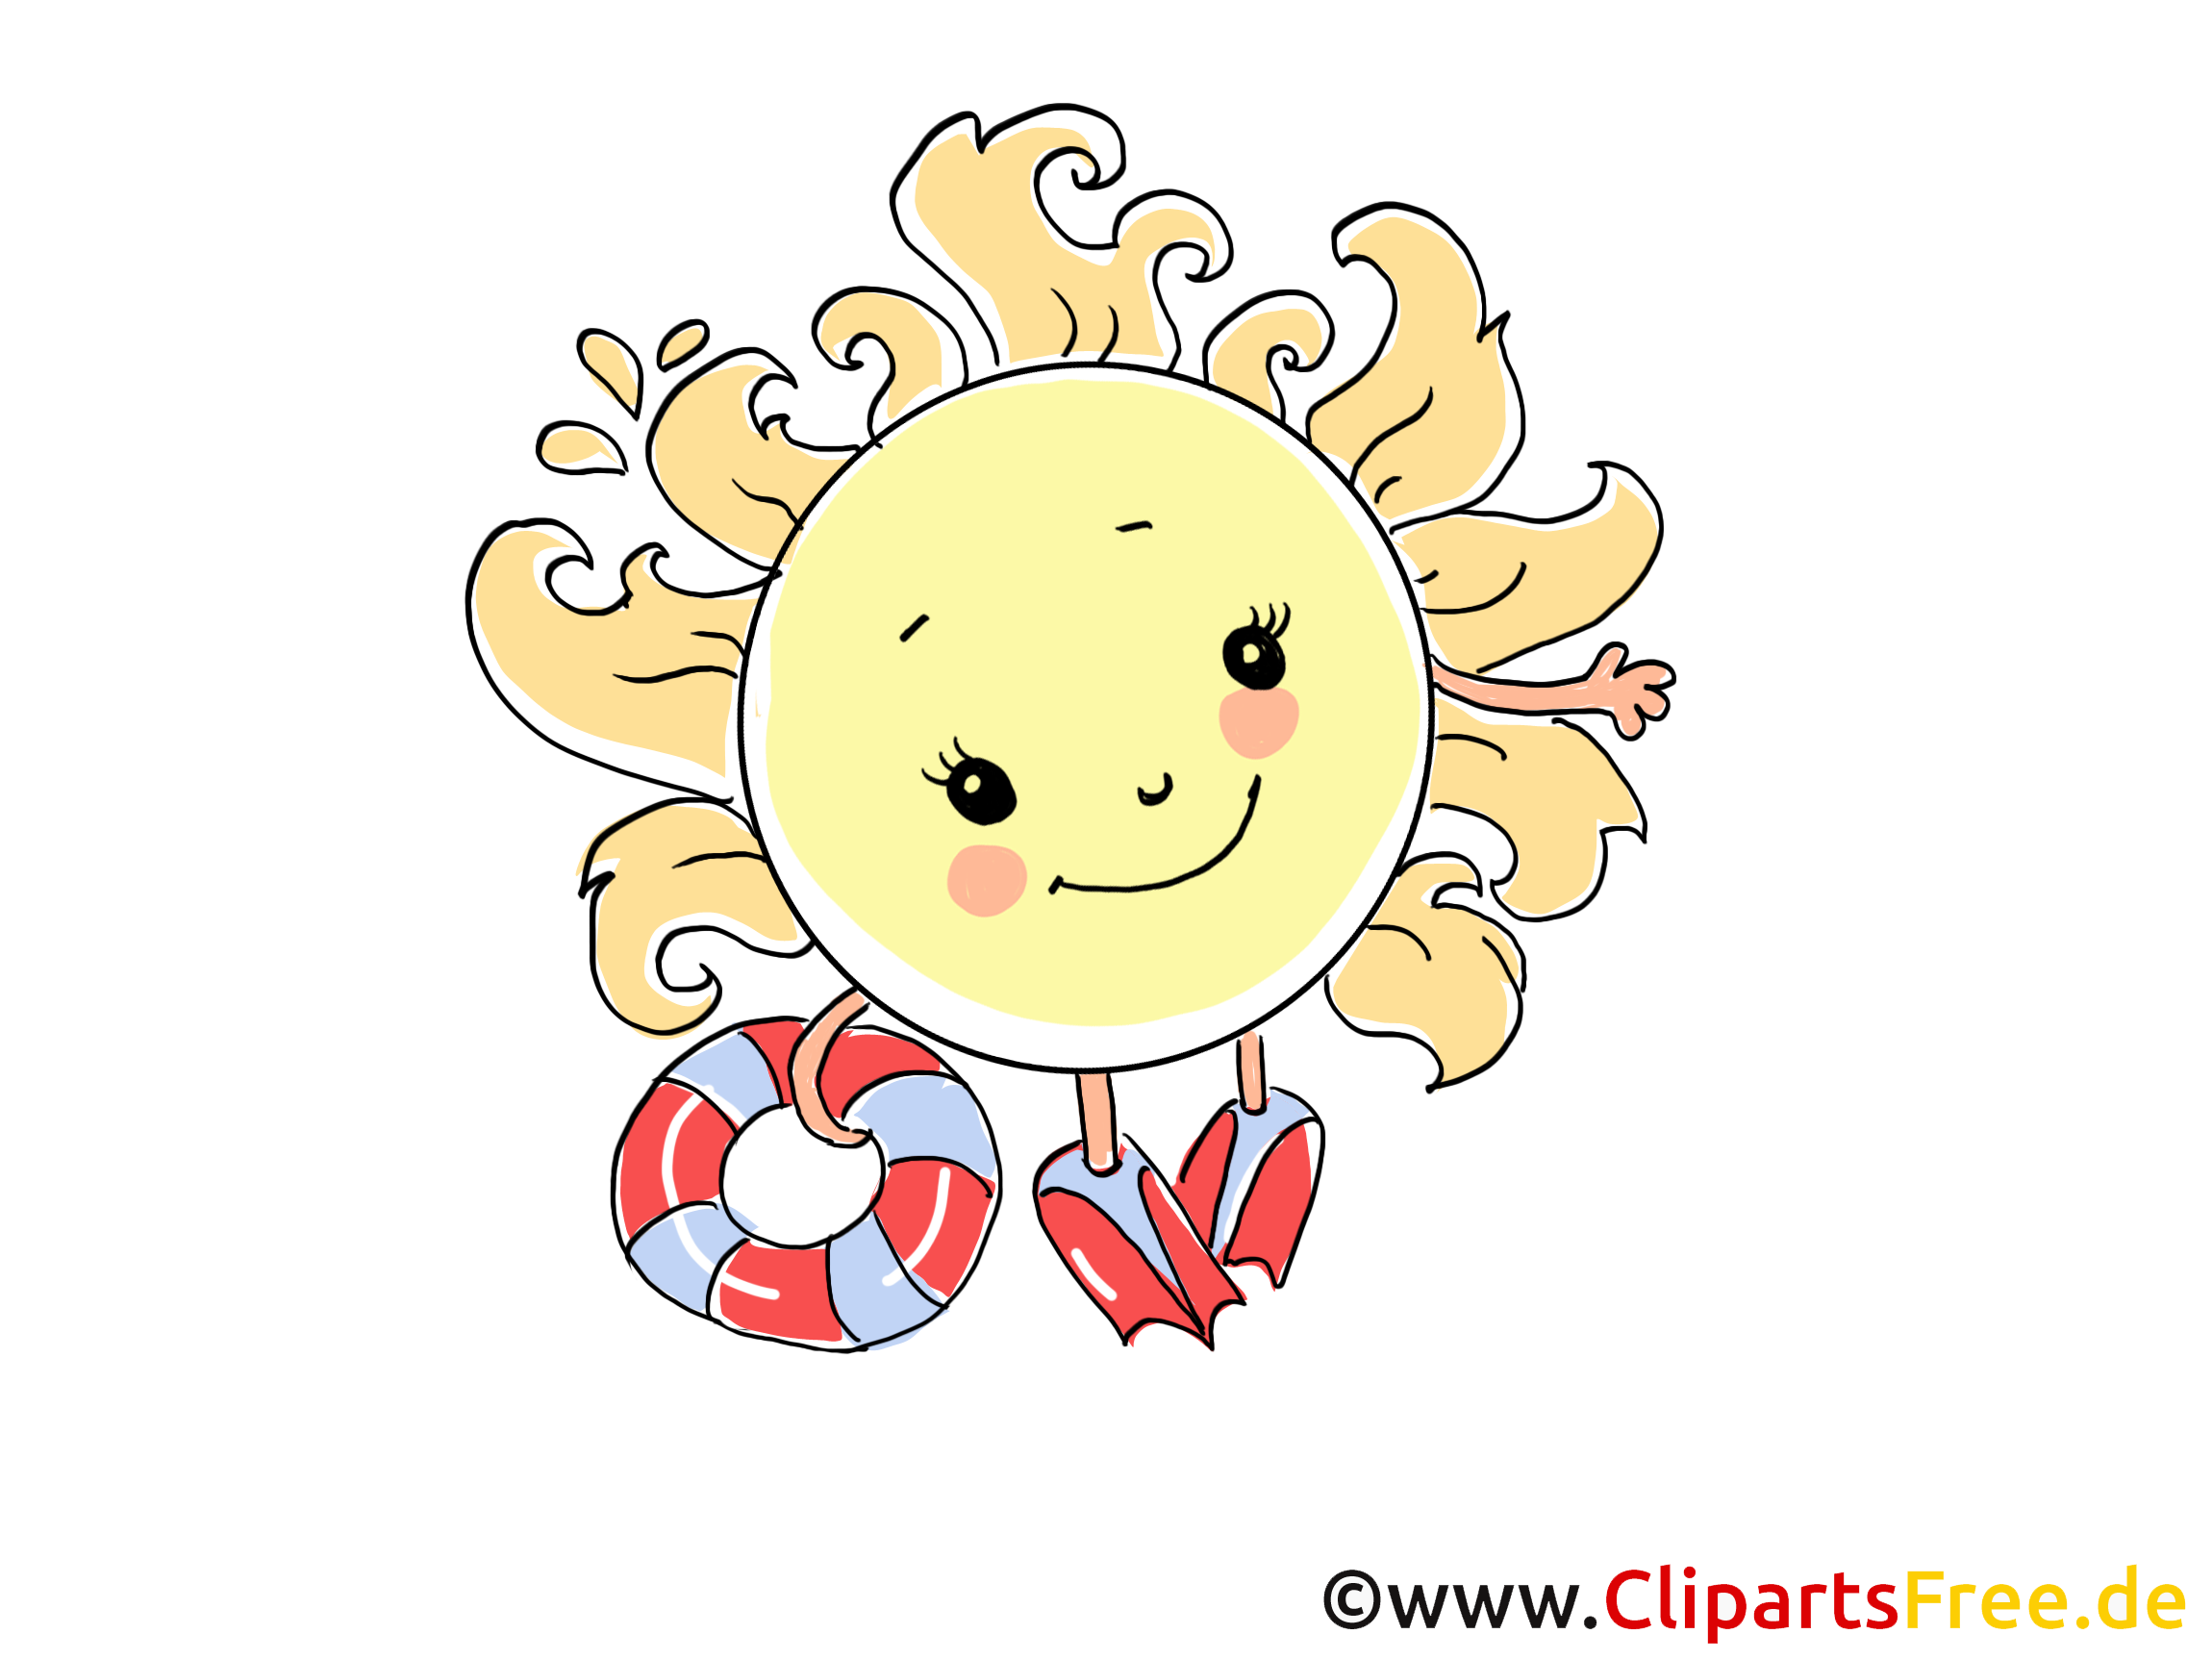 clipart urlaub animiert - photo #10